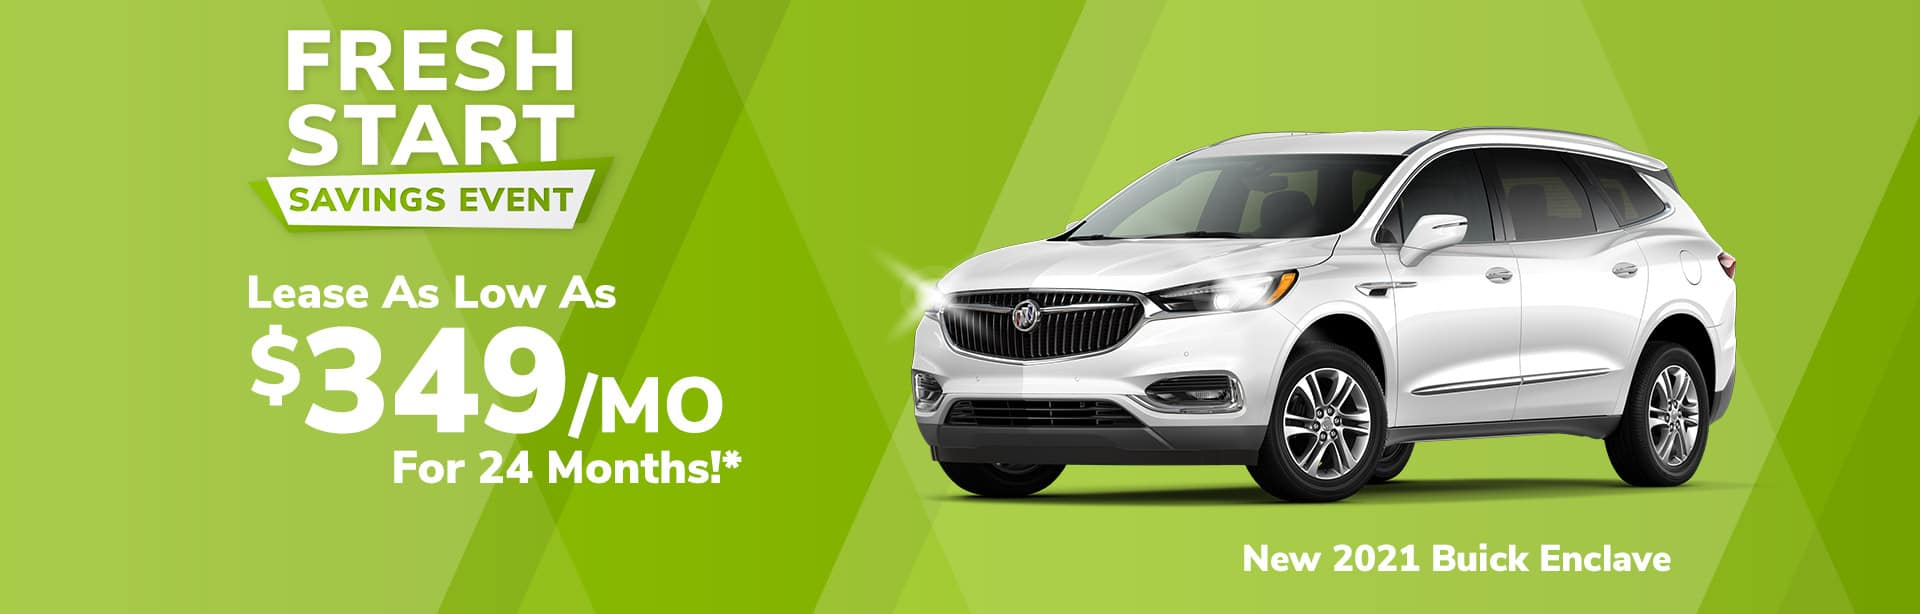 Lease Special on New Buick Enclave near Clinton, Indiana